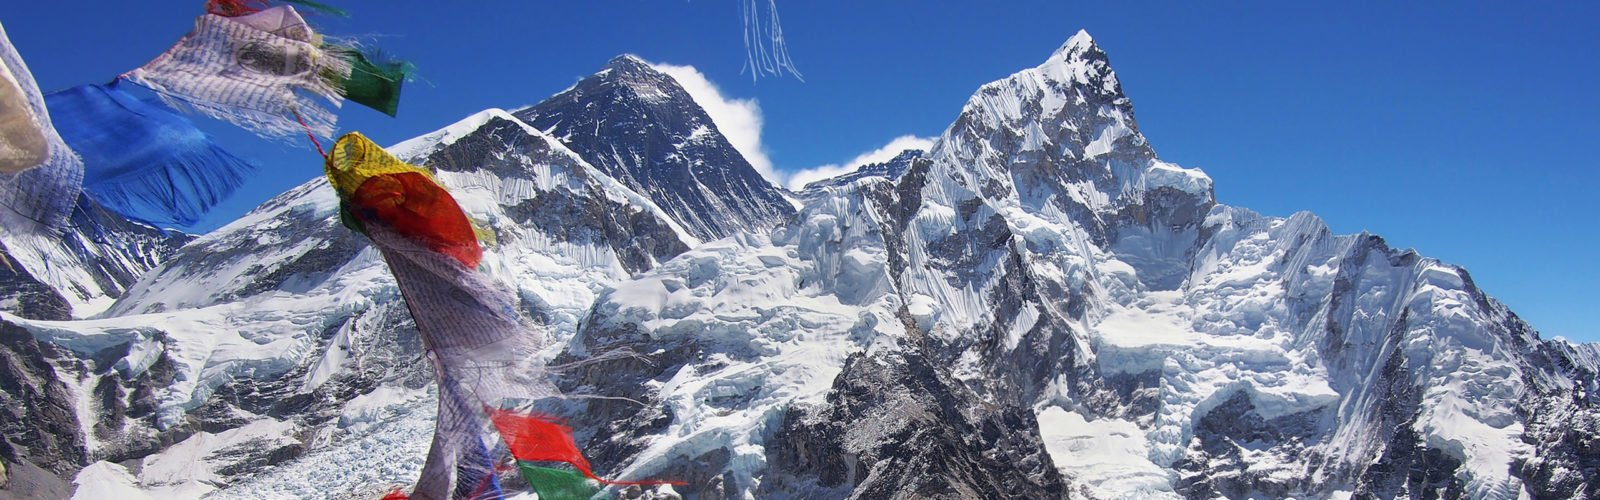 Mount Everest and Nuptse in the Nepal Himalaya